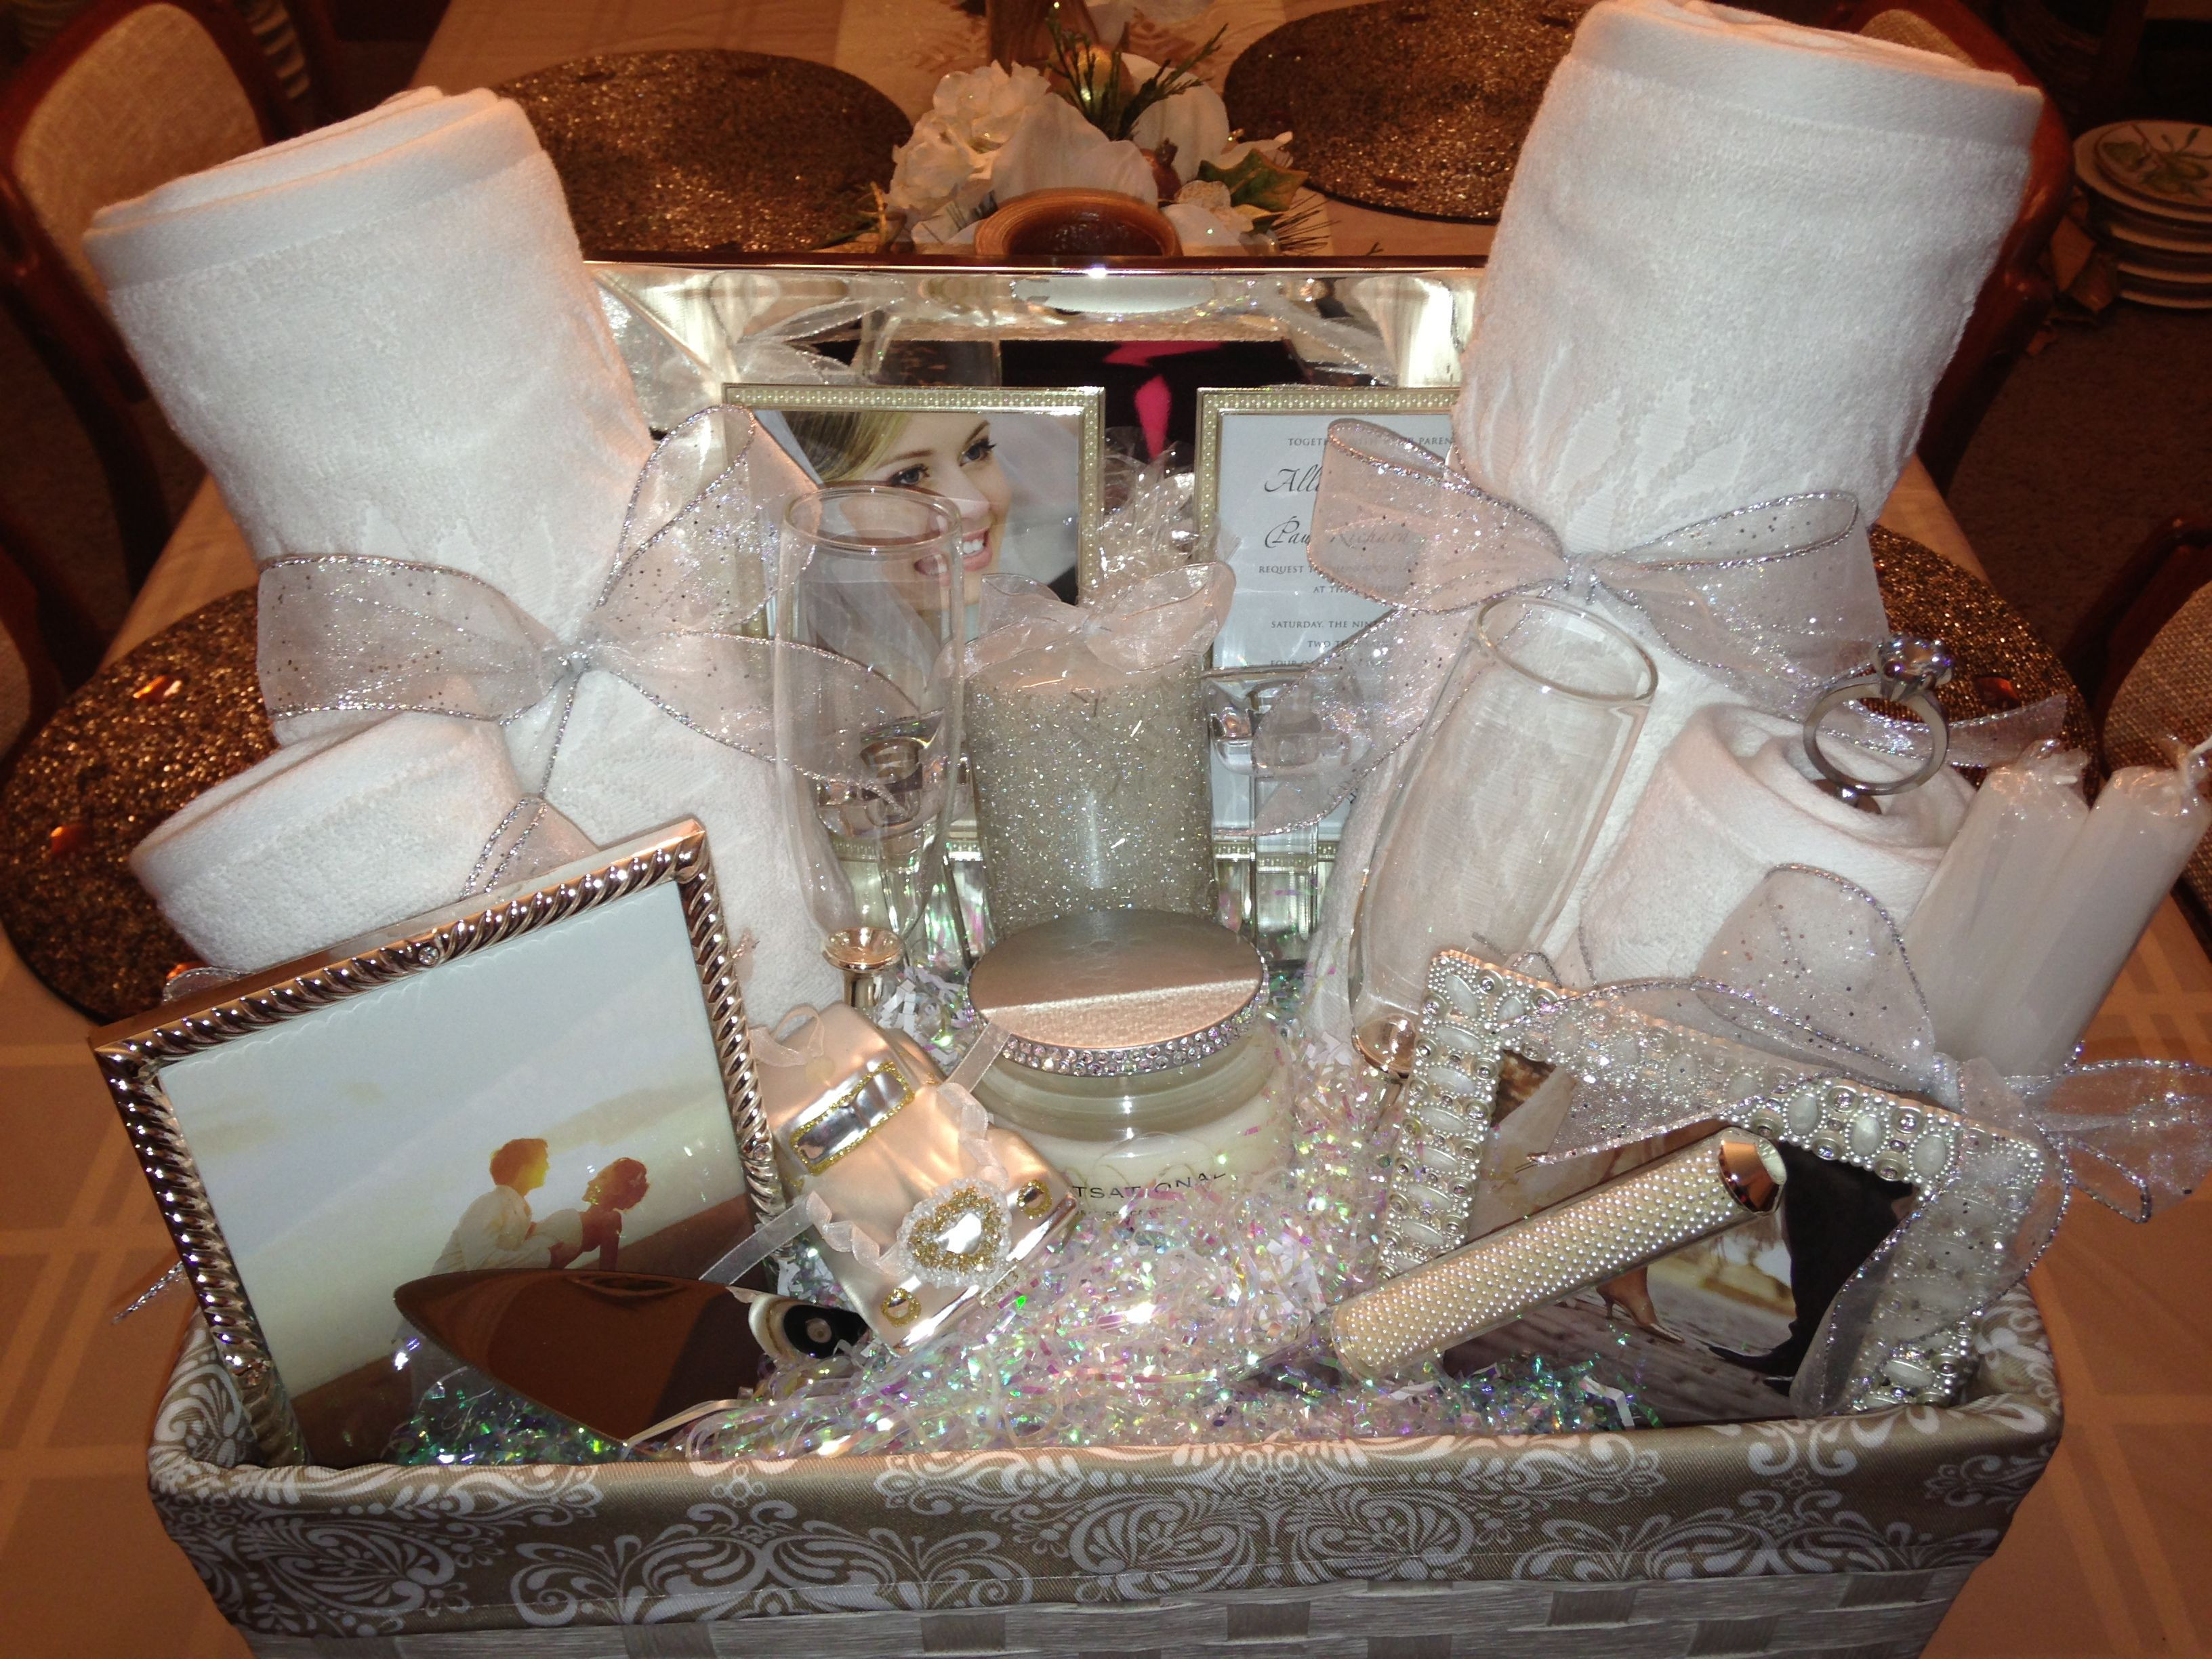 Best ideas about Wedding Gift Ideas For Bride And Groom Who Have Everything . Save or Pin Bridal shower t basket ideas Ideasthatsparkle on Now.